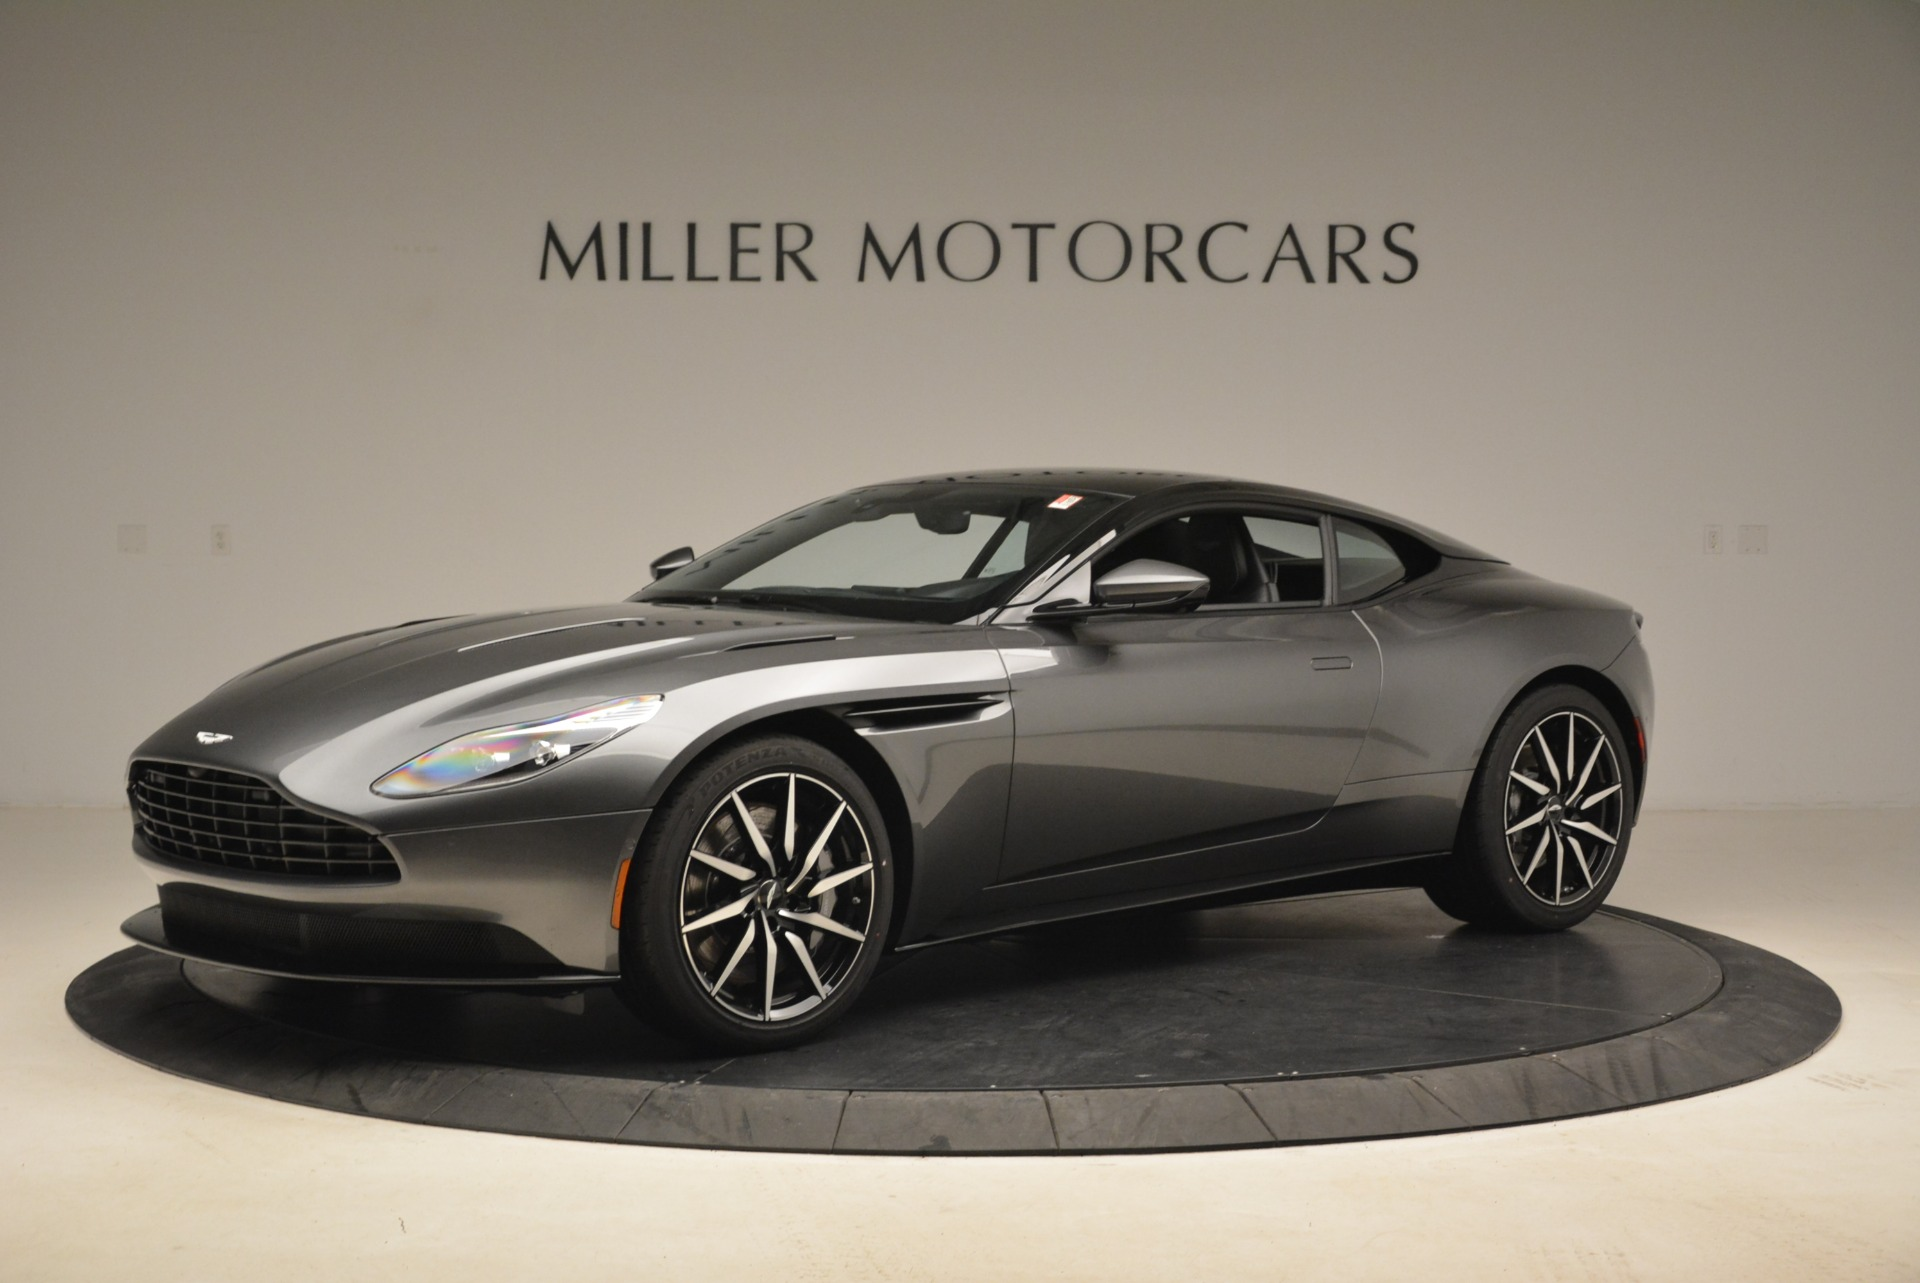 New 2018 Aston Martin DB11 V12 Coupe For Sale In Westport, CT 2228_p2